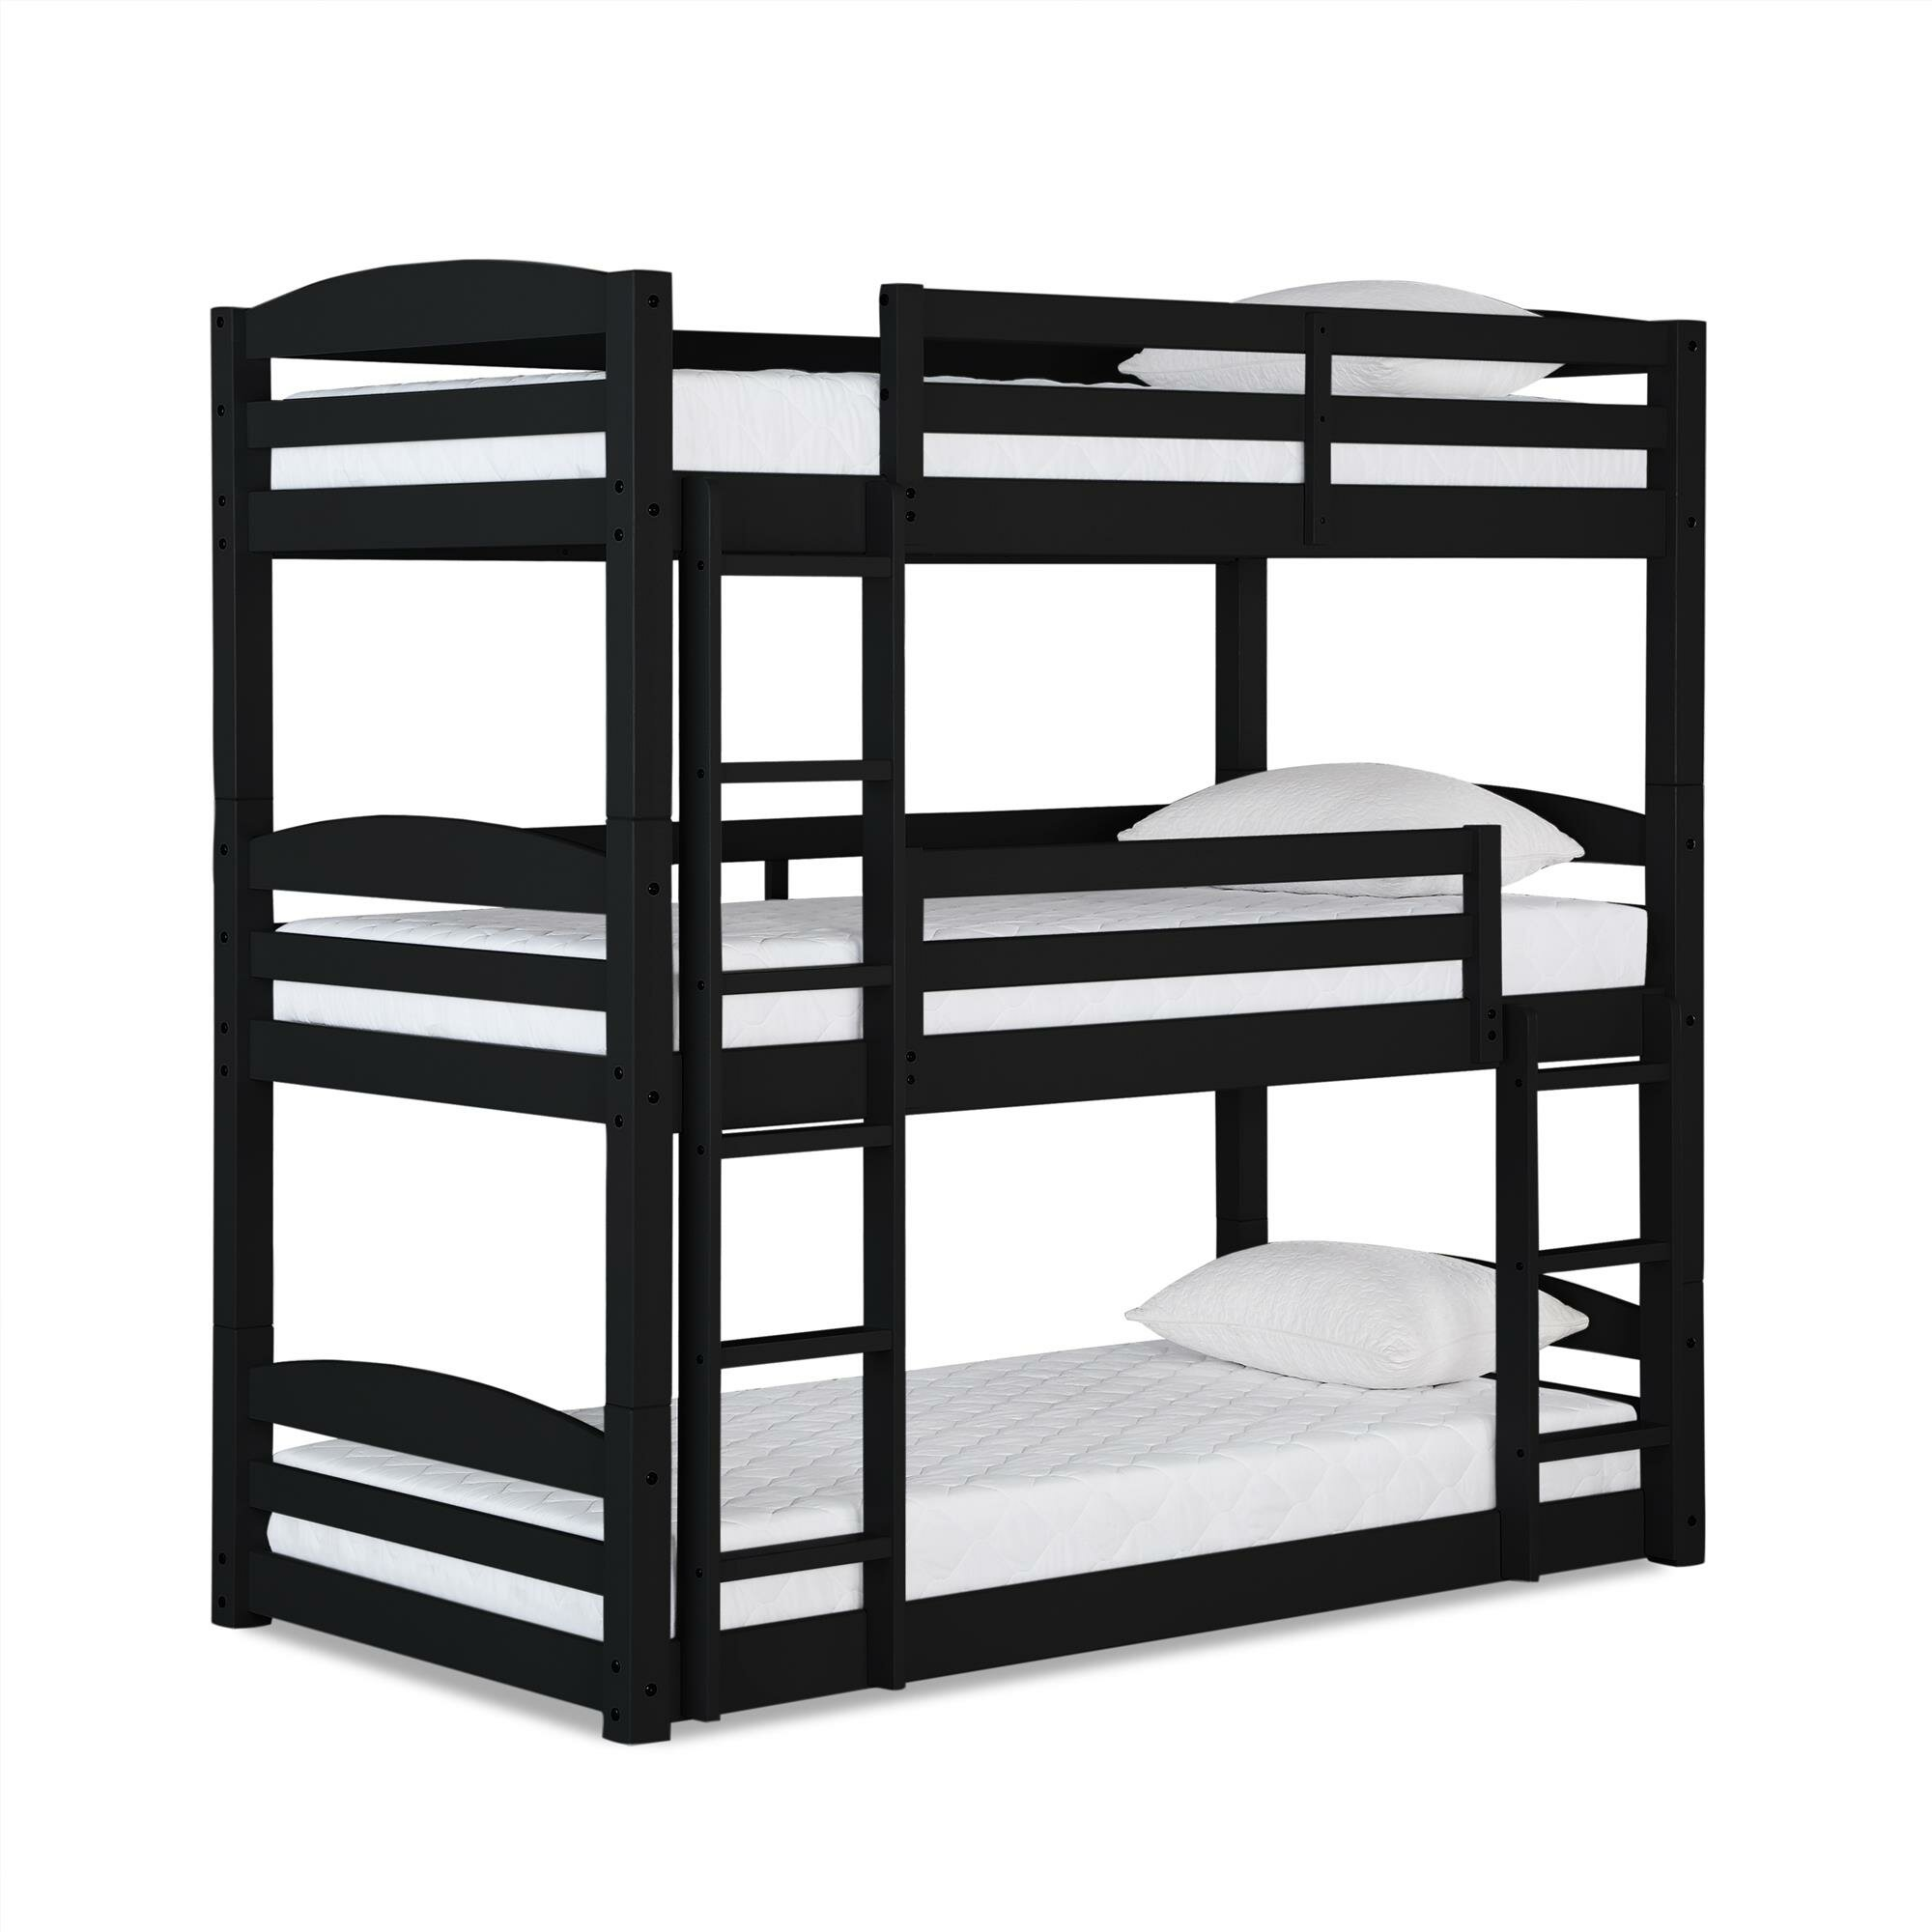 Picture of: Black Wood Bunk Beds You Ll Love In 2020 Wayfair